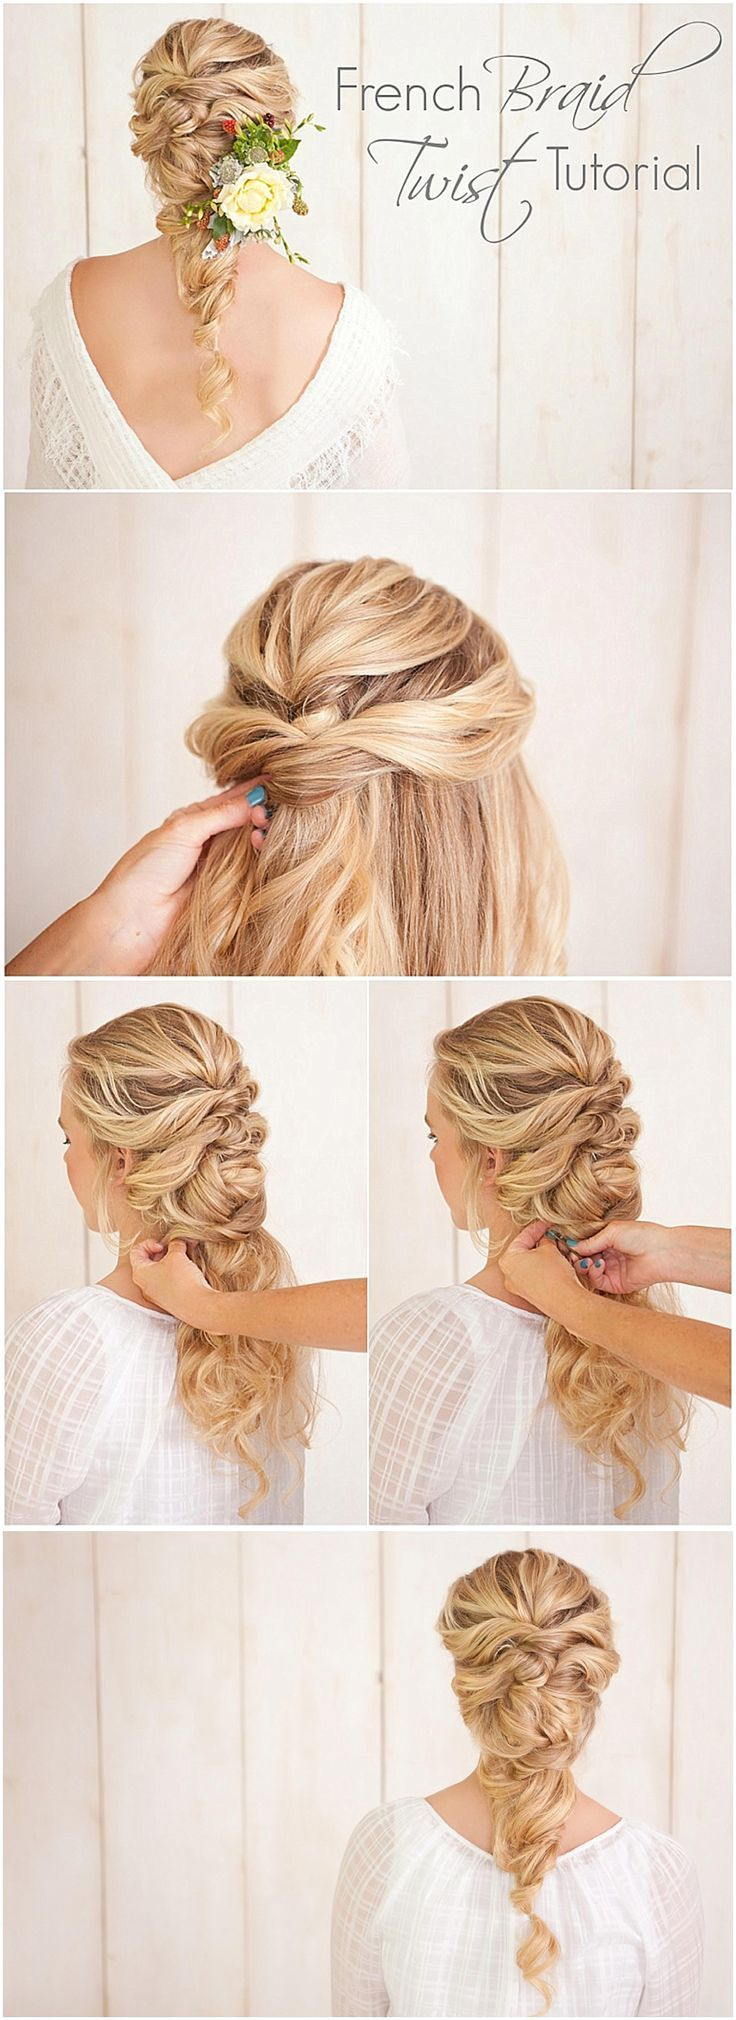 French Hairstyles For Long Hair: Best 25+ French Braids Ideas On Pinterest